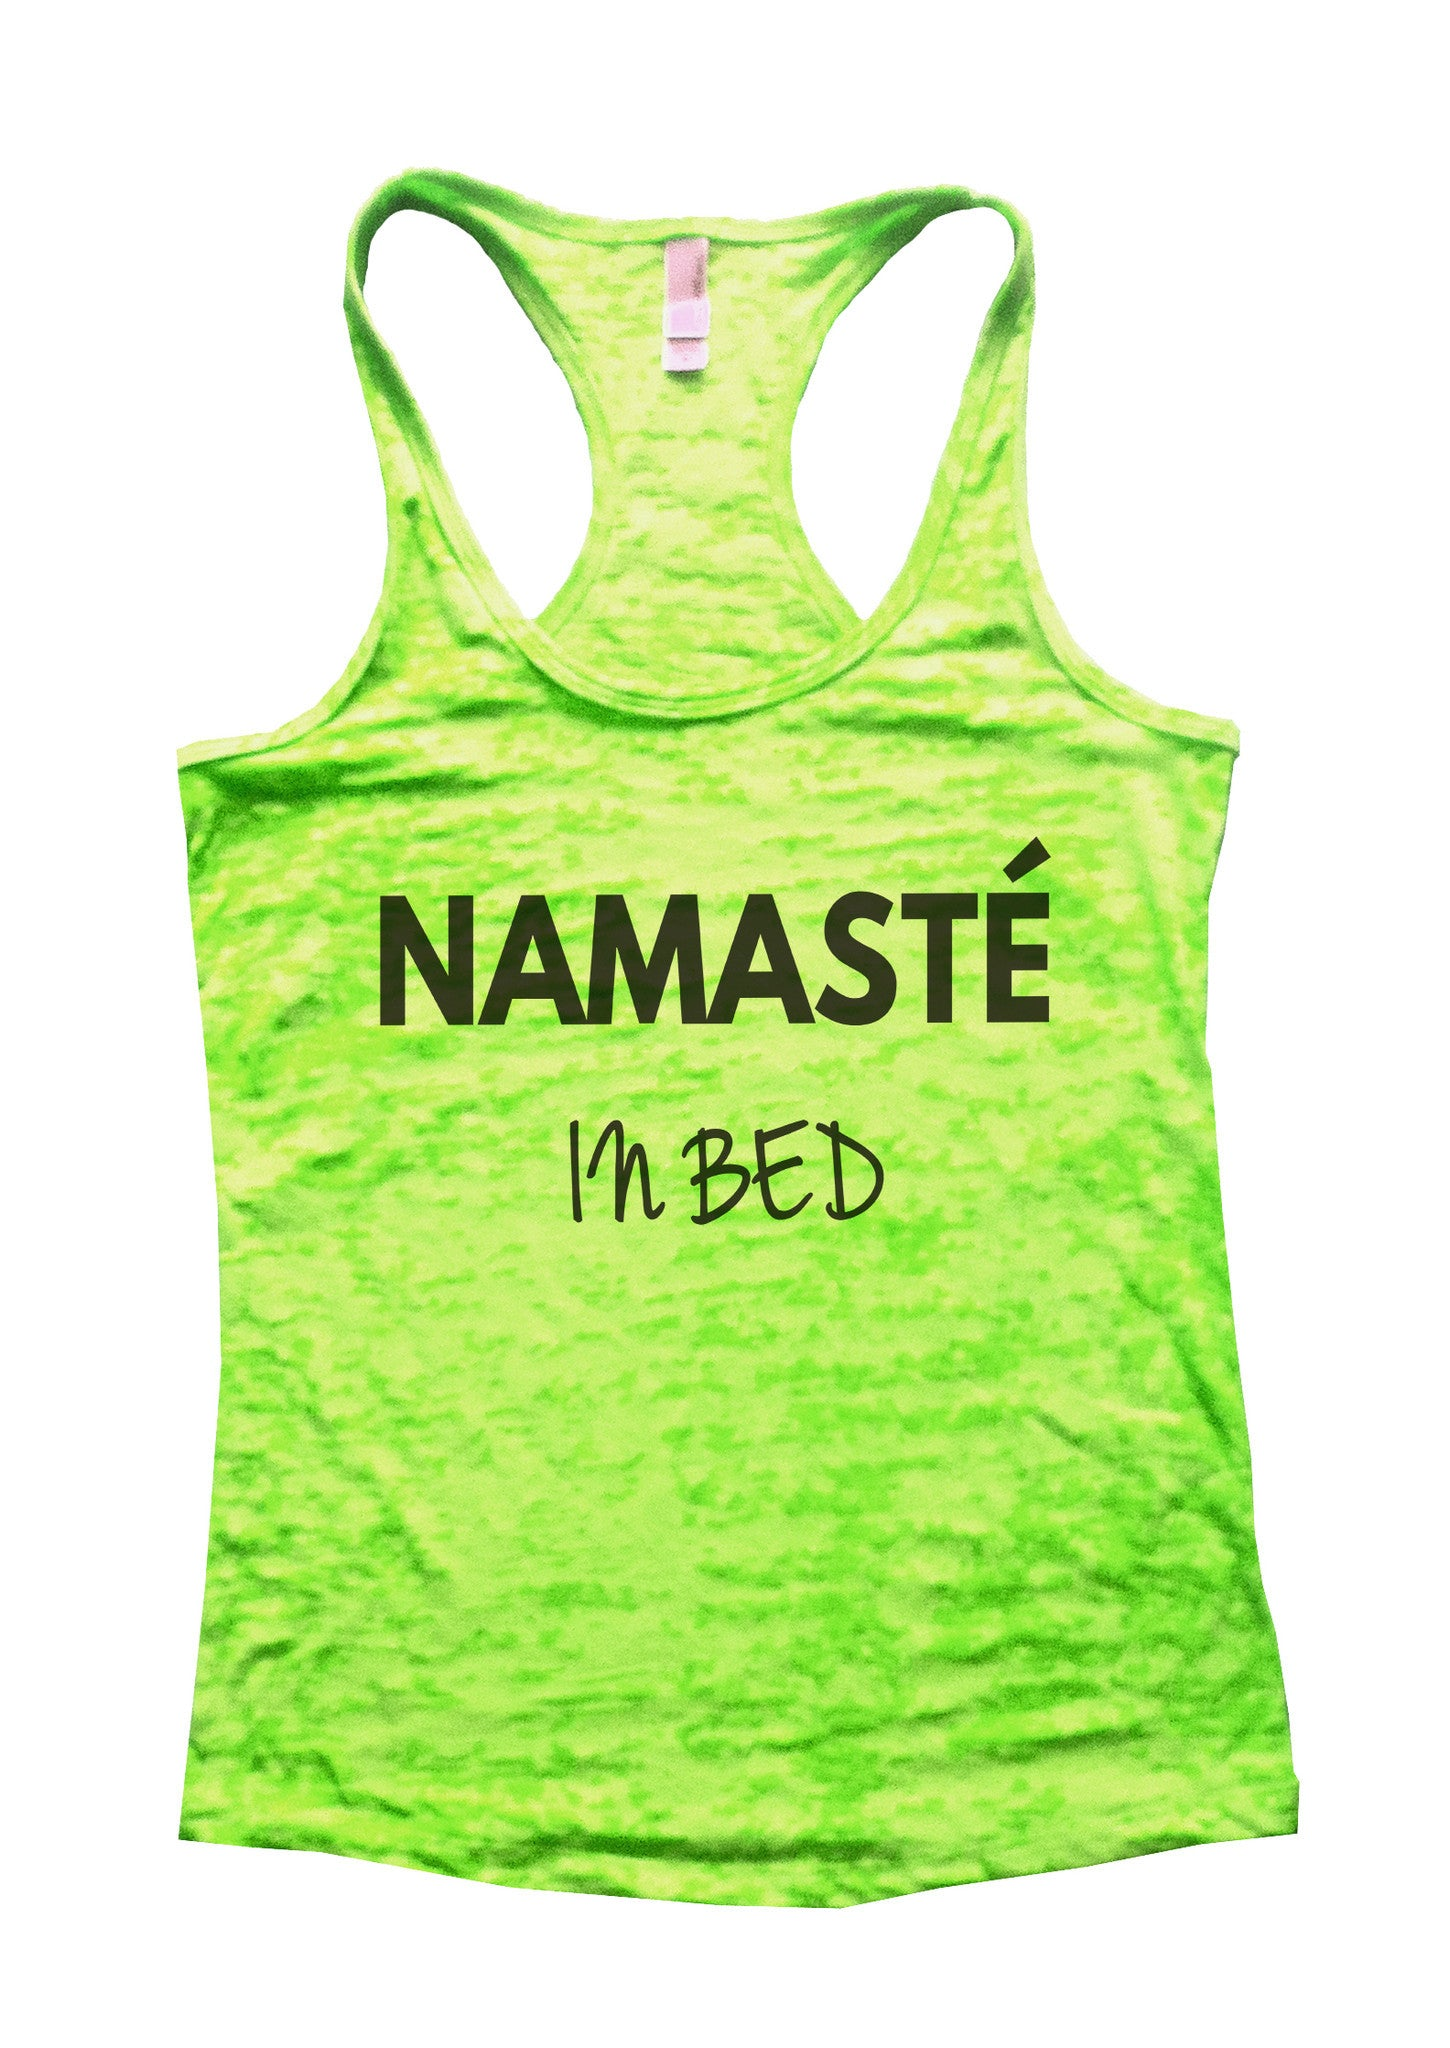 Namaste In Bed Burnout Tank Top By BurnoutTankTops.com - 647 - Funny Shirts Tank Tops Burnouts and Triblends  - 3